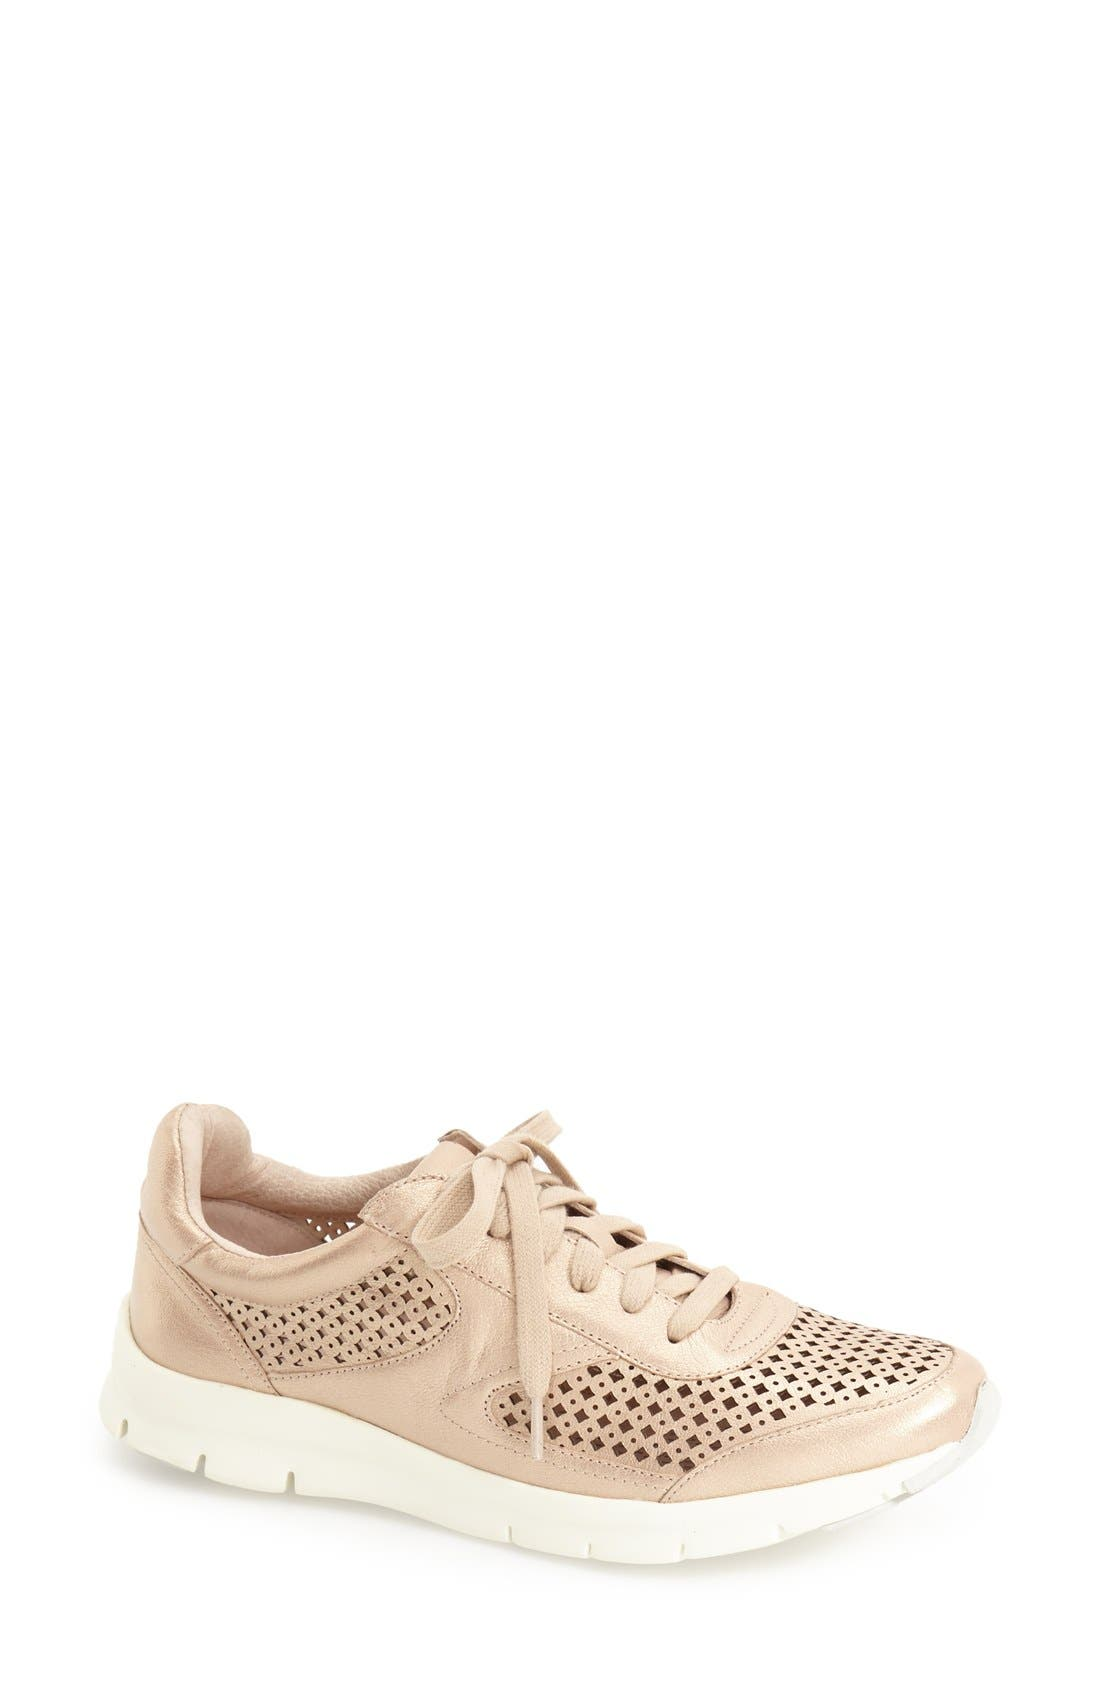 'Tammi' Perforated Leather Sneaker,                         Main,                         color, 250